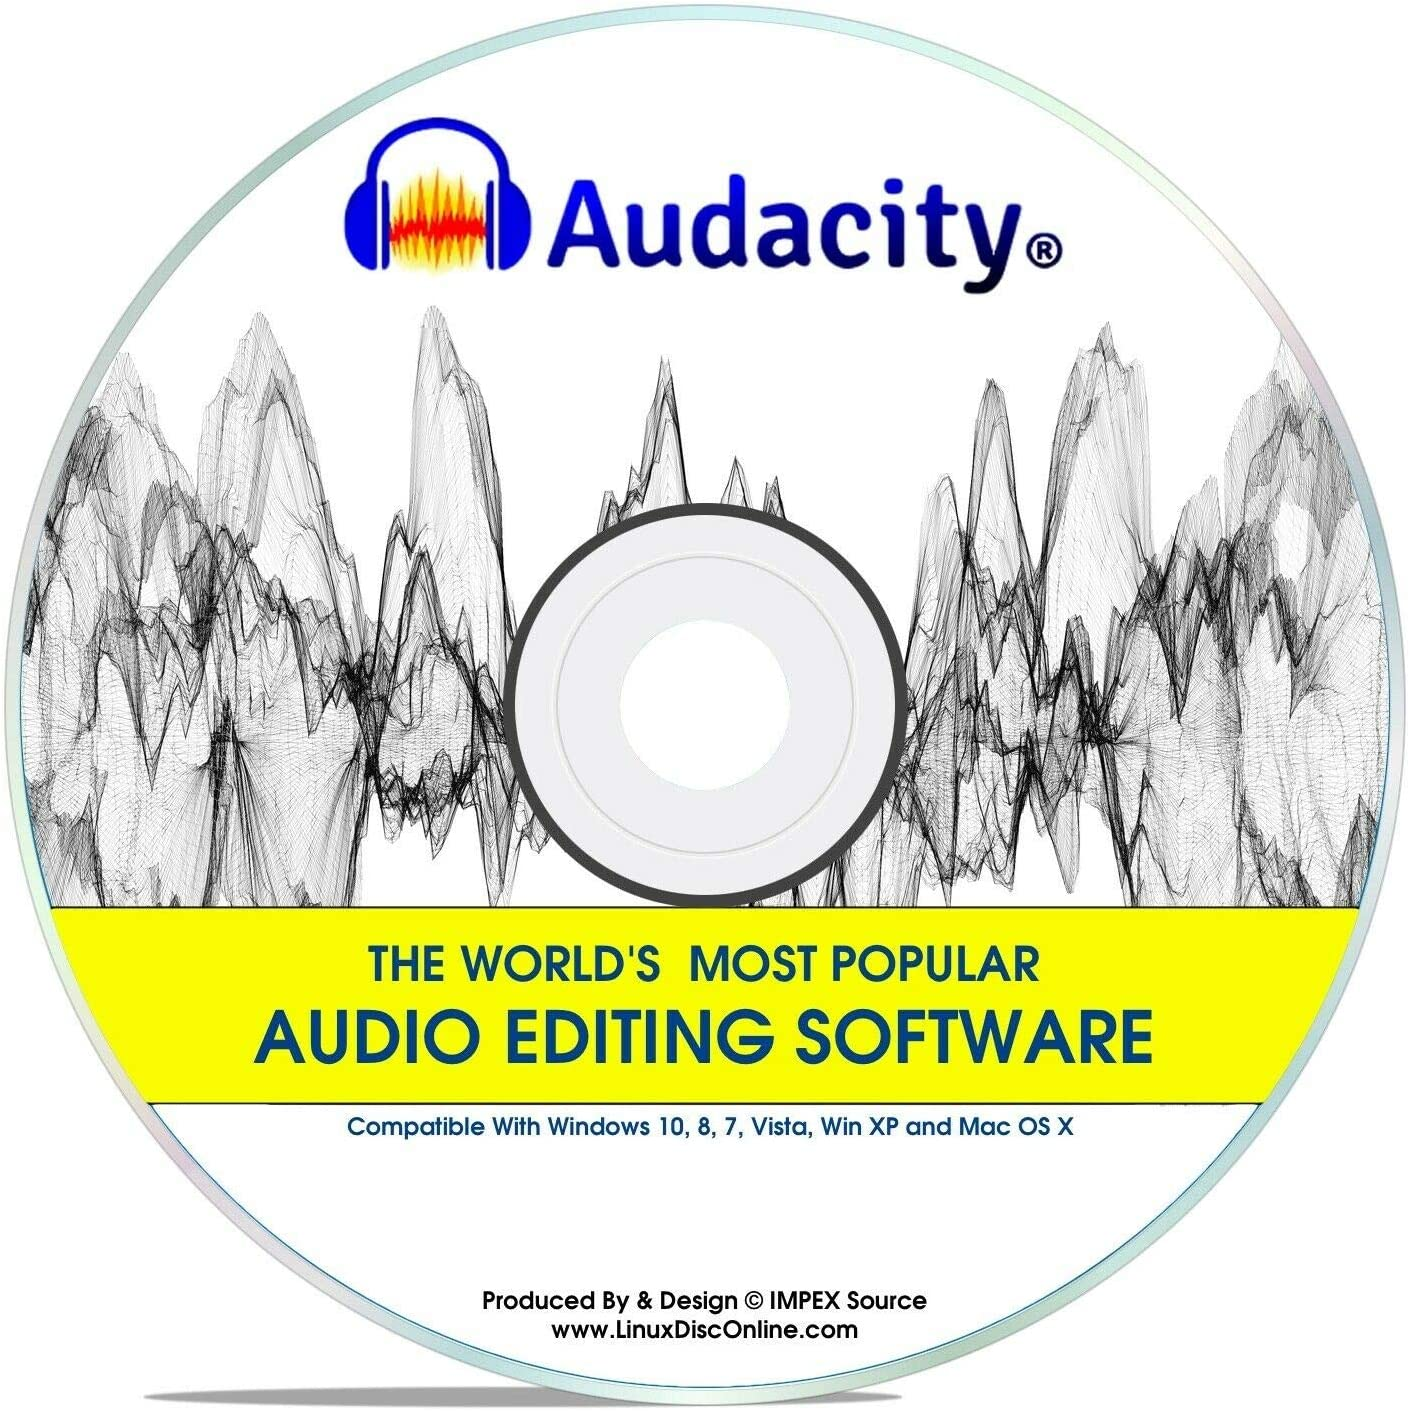 Audacity® 2020 Newest Professional Pro Audio Music Editing Recording Software Win 10,8,7,*Vista* And XP Mac OS X Linux